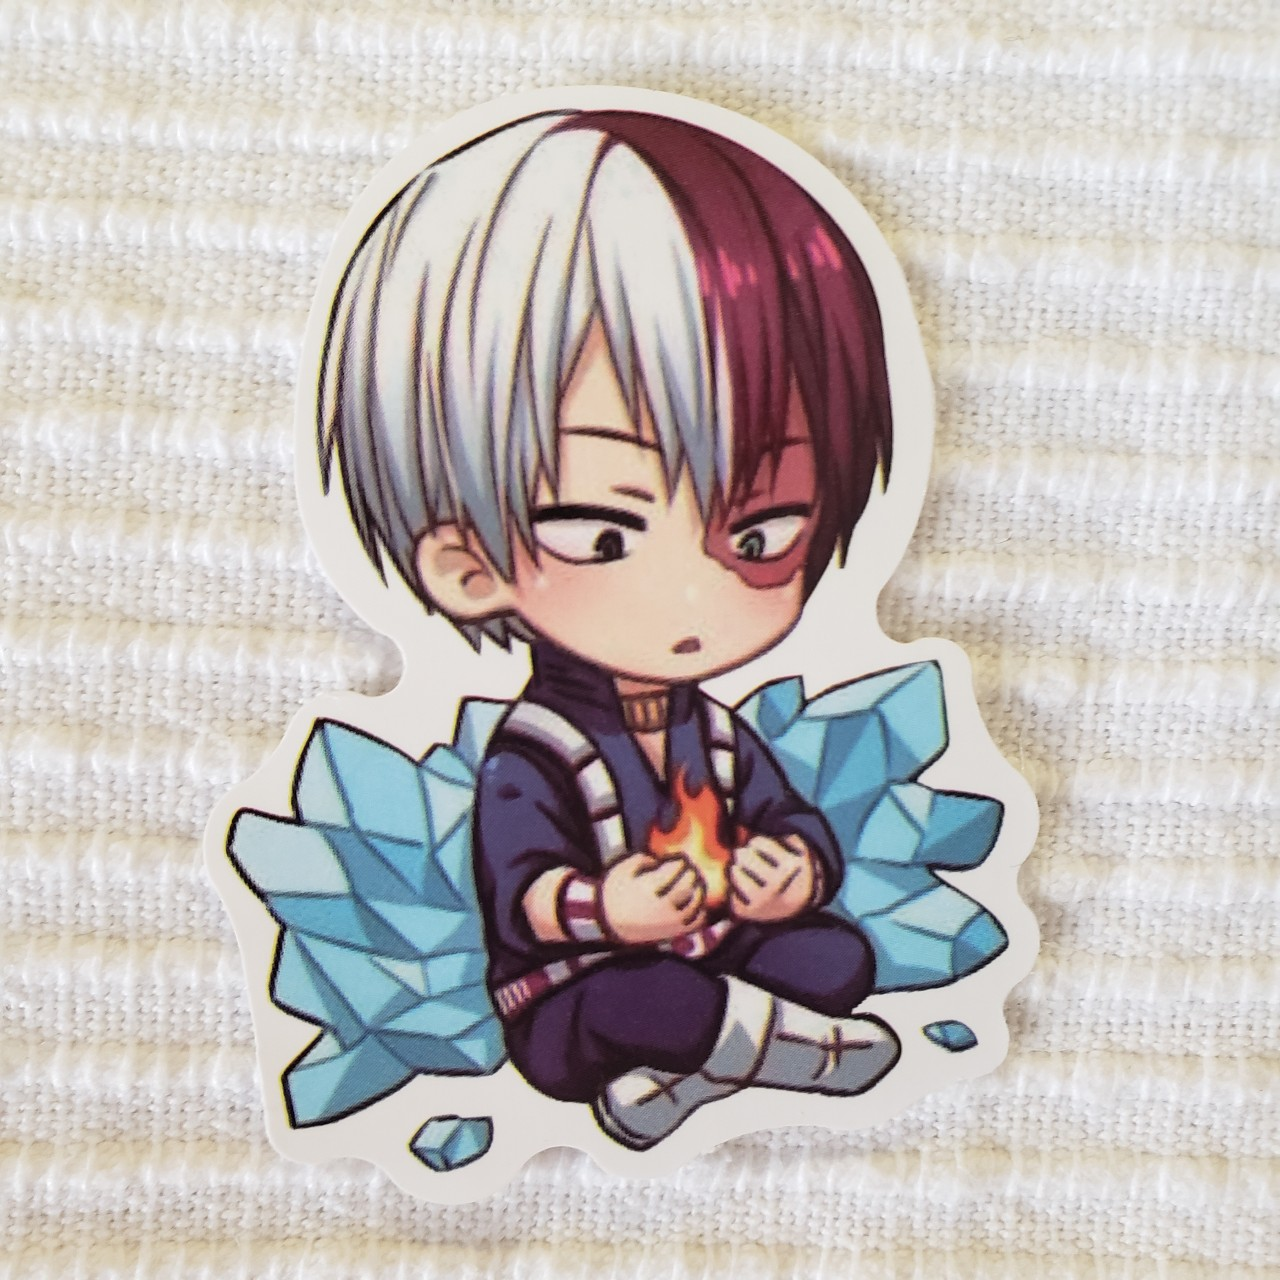 Chibi Todoroki With Fire And Ice Sticker Is About 7 Depop